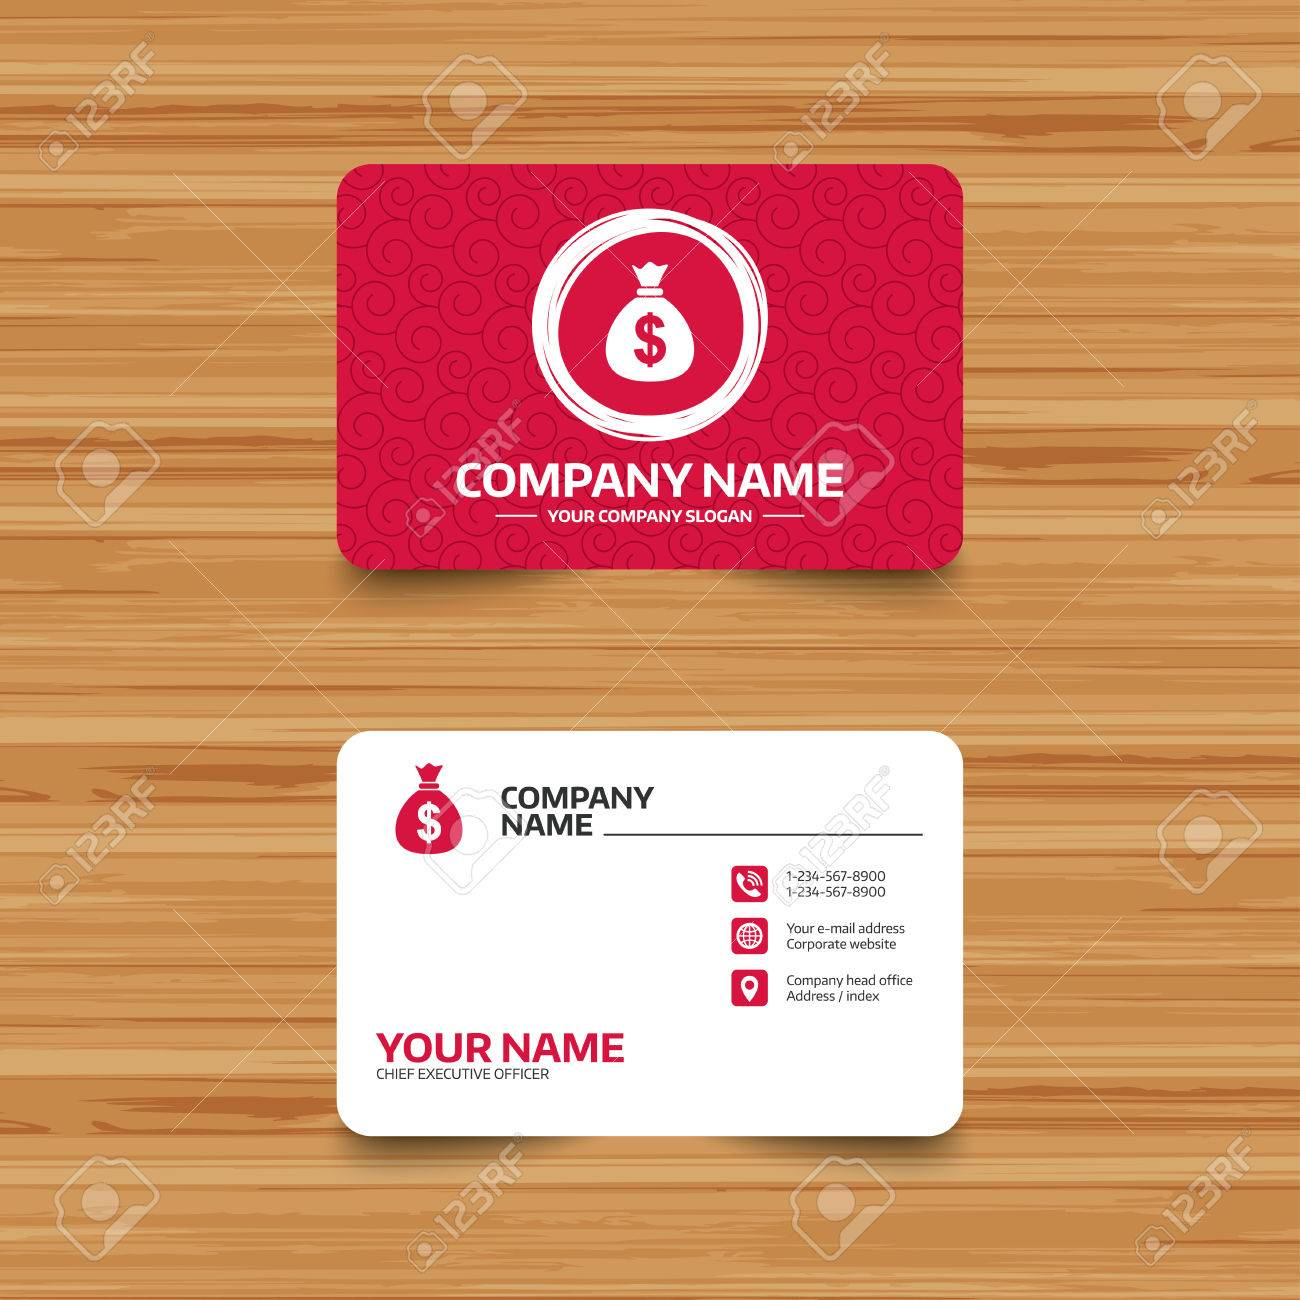 Business card template with texture money bag sign icon dollar business card template with texture money bag sign icon dollar usd currency symbol colourmoves